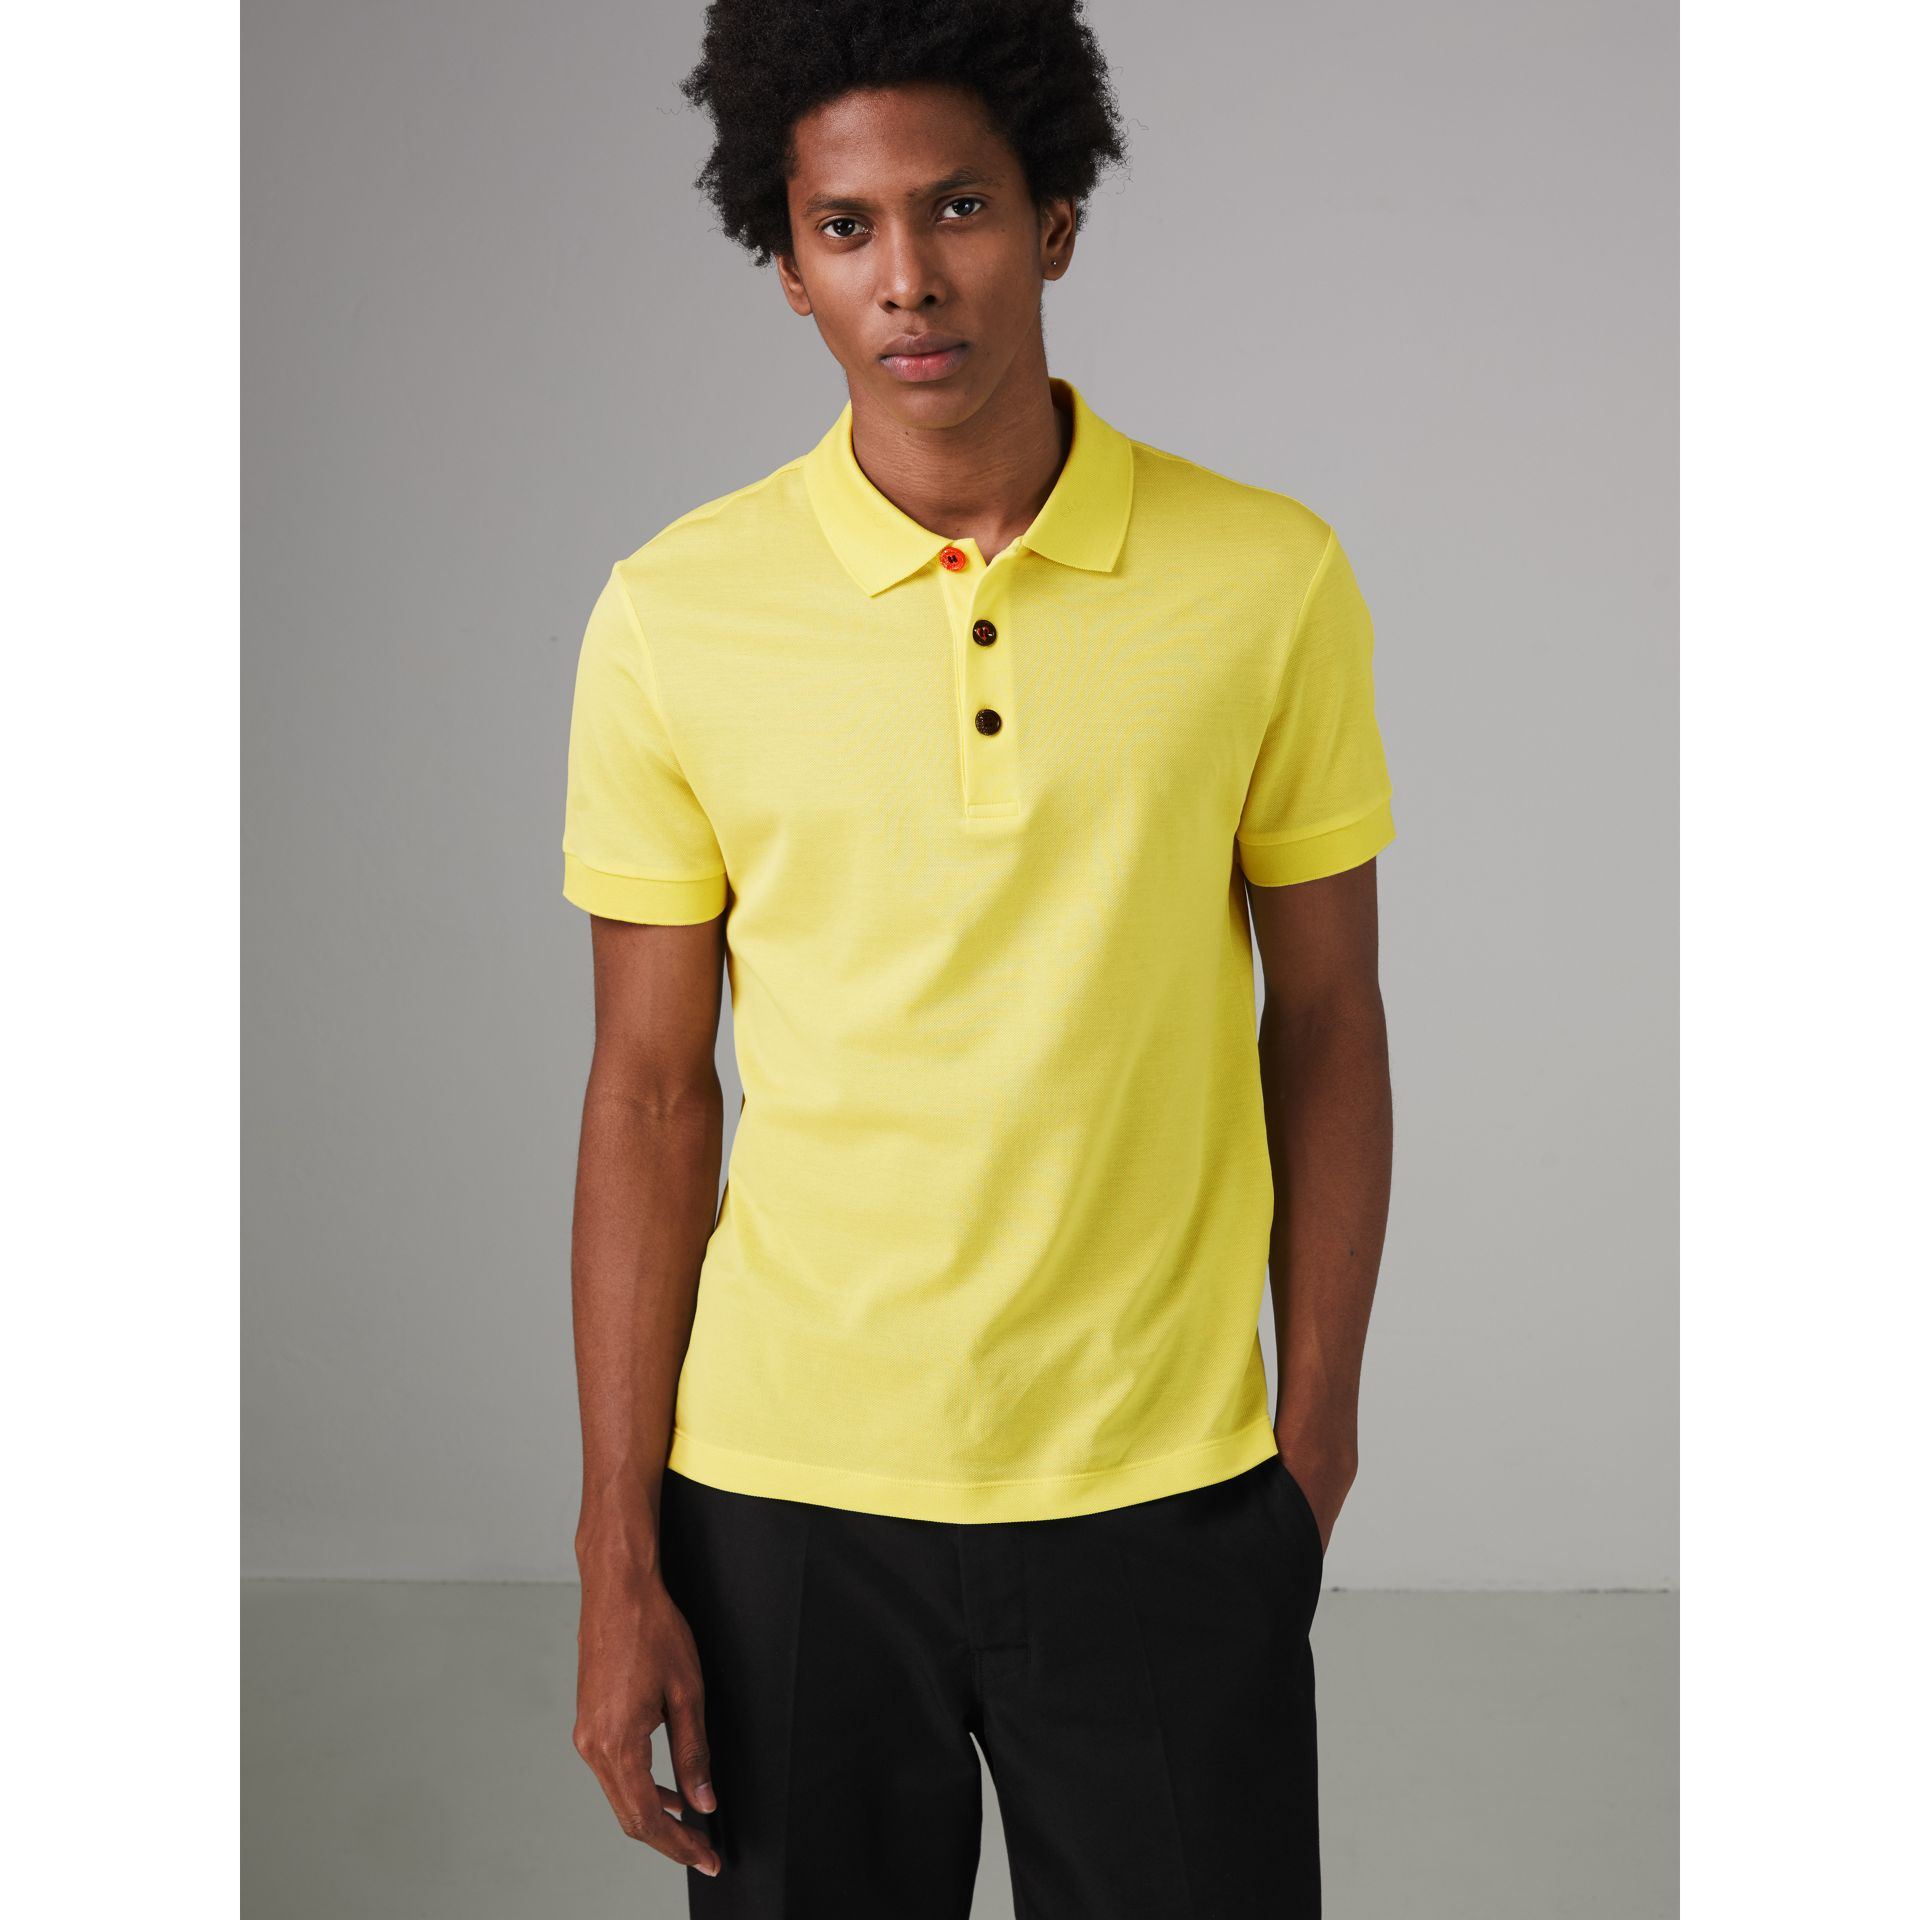 Painted Button Cotton Piqué Polo Shirt in Vibrant Lemon - Men | Burberry - gallery image 4